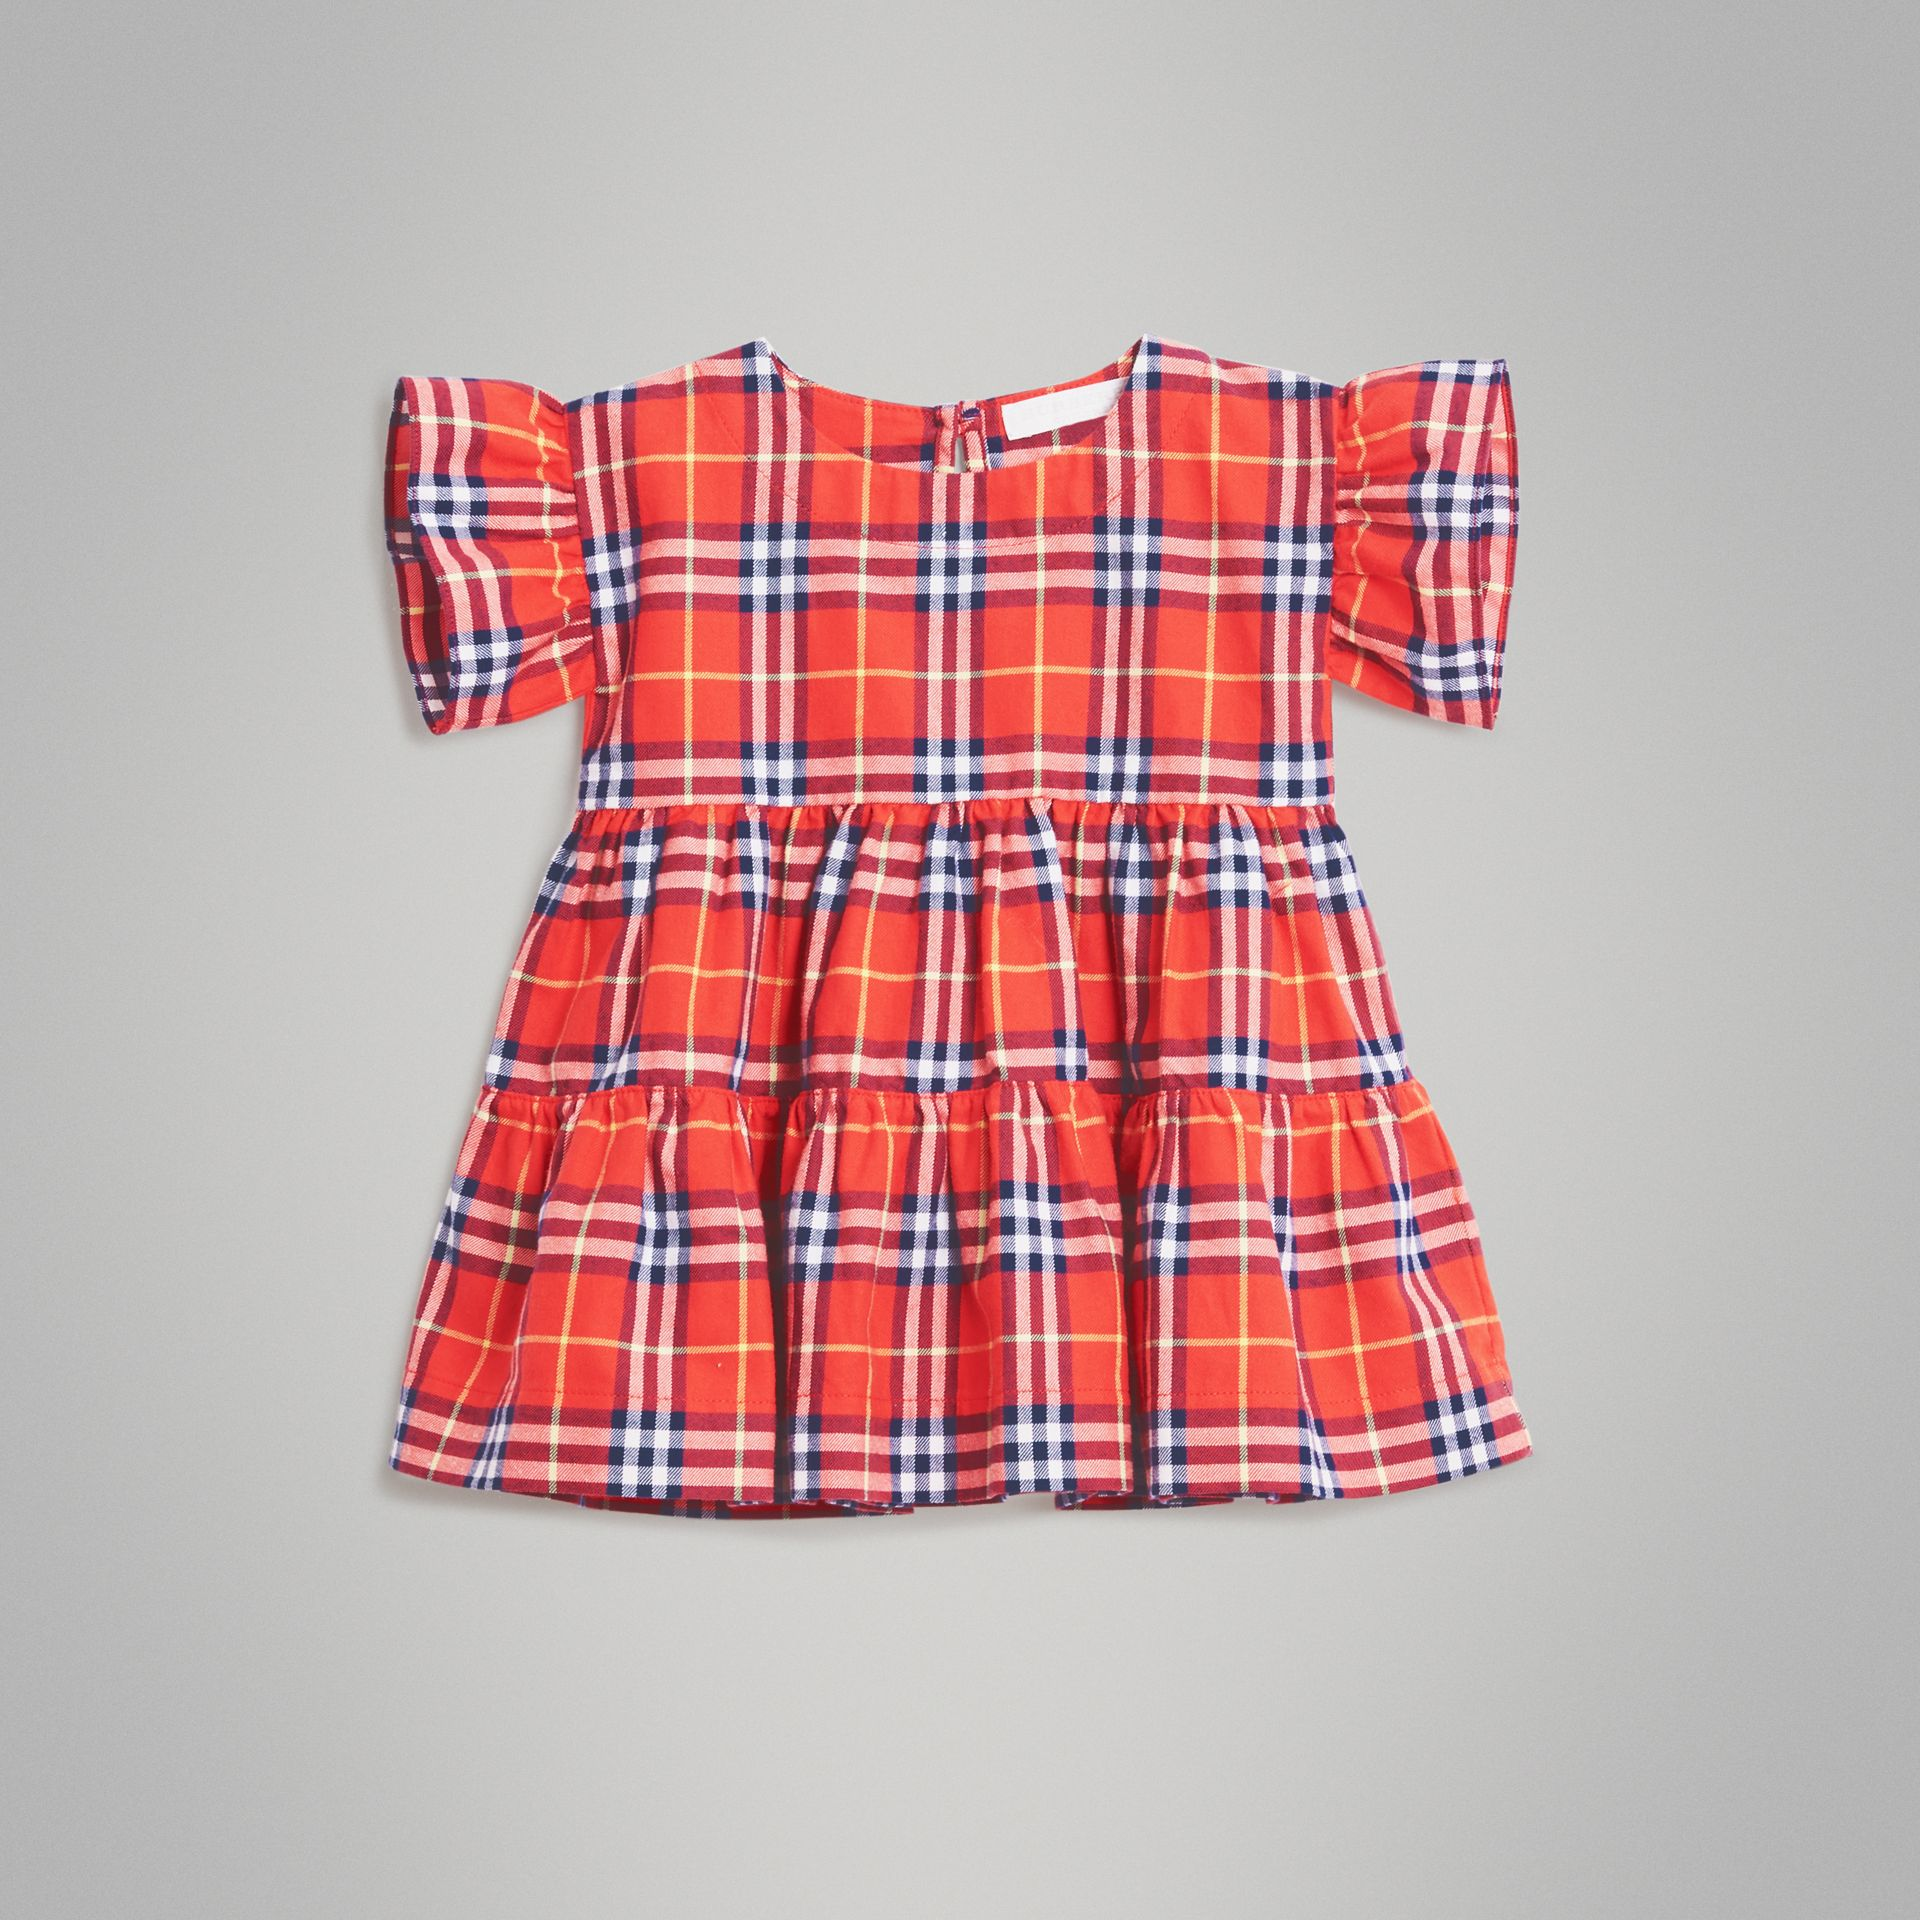 Ruffle Detail Cotton Check Dress in Orange Red - Children | Burberry United Kingdom - gallery image 0